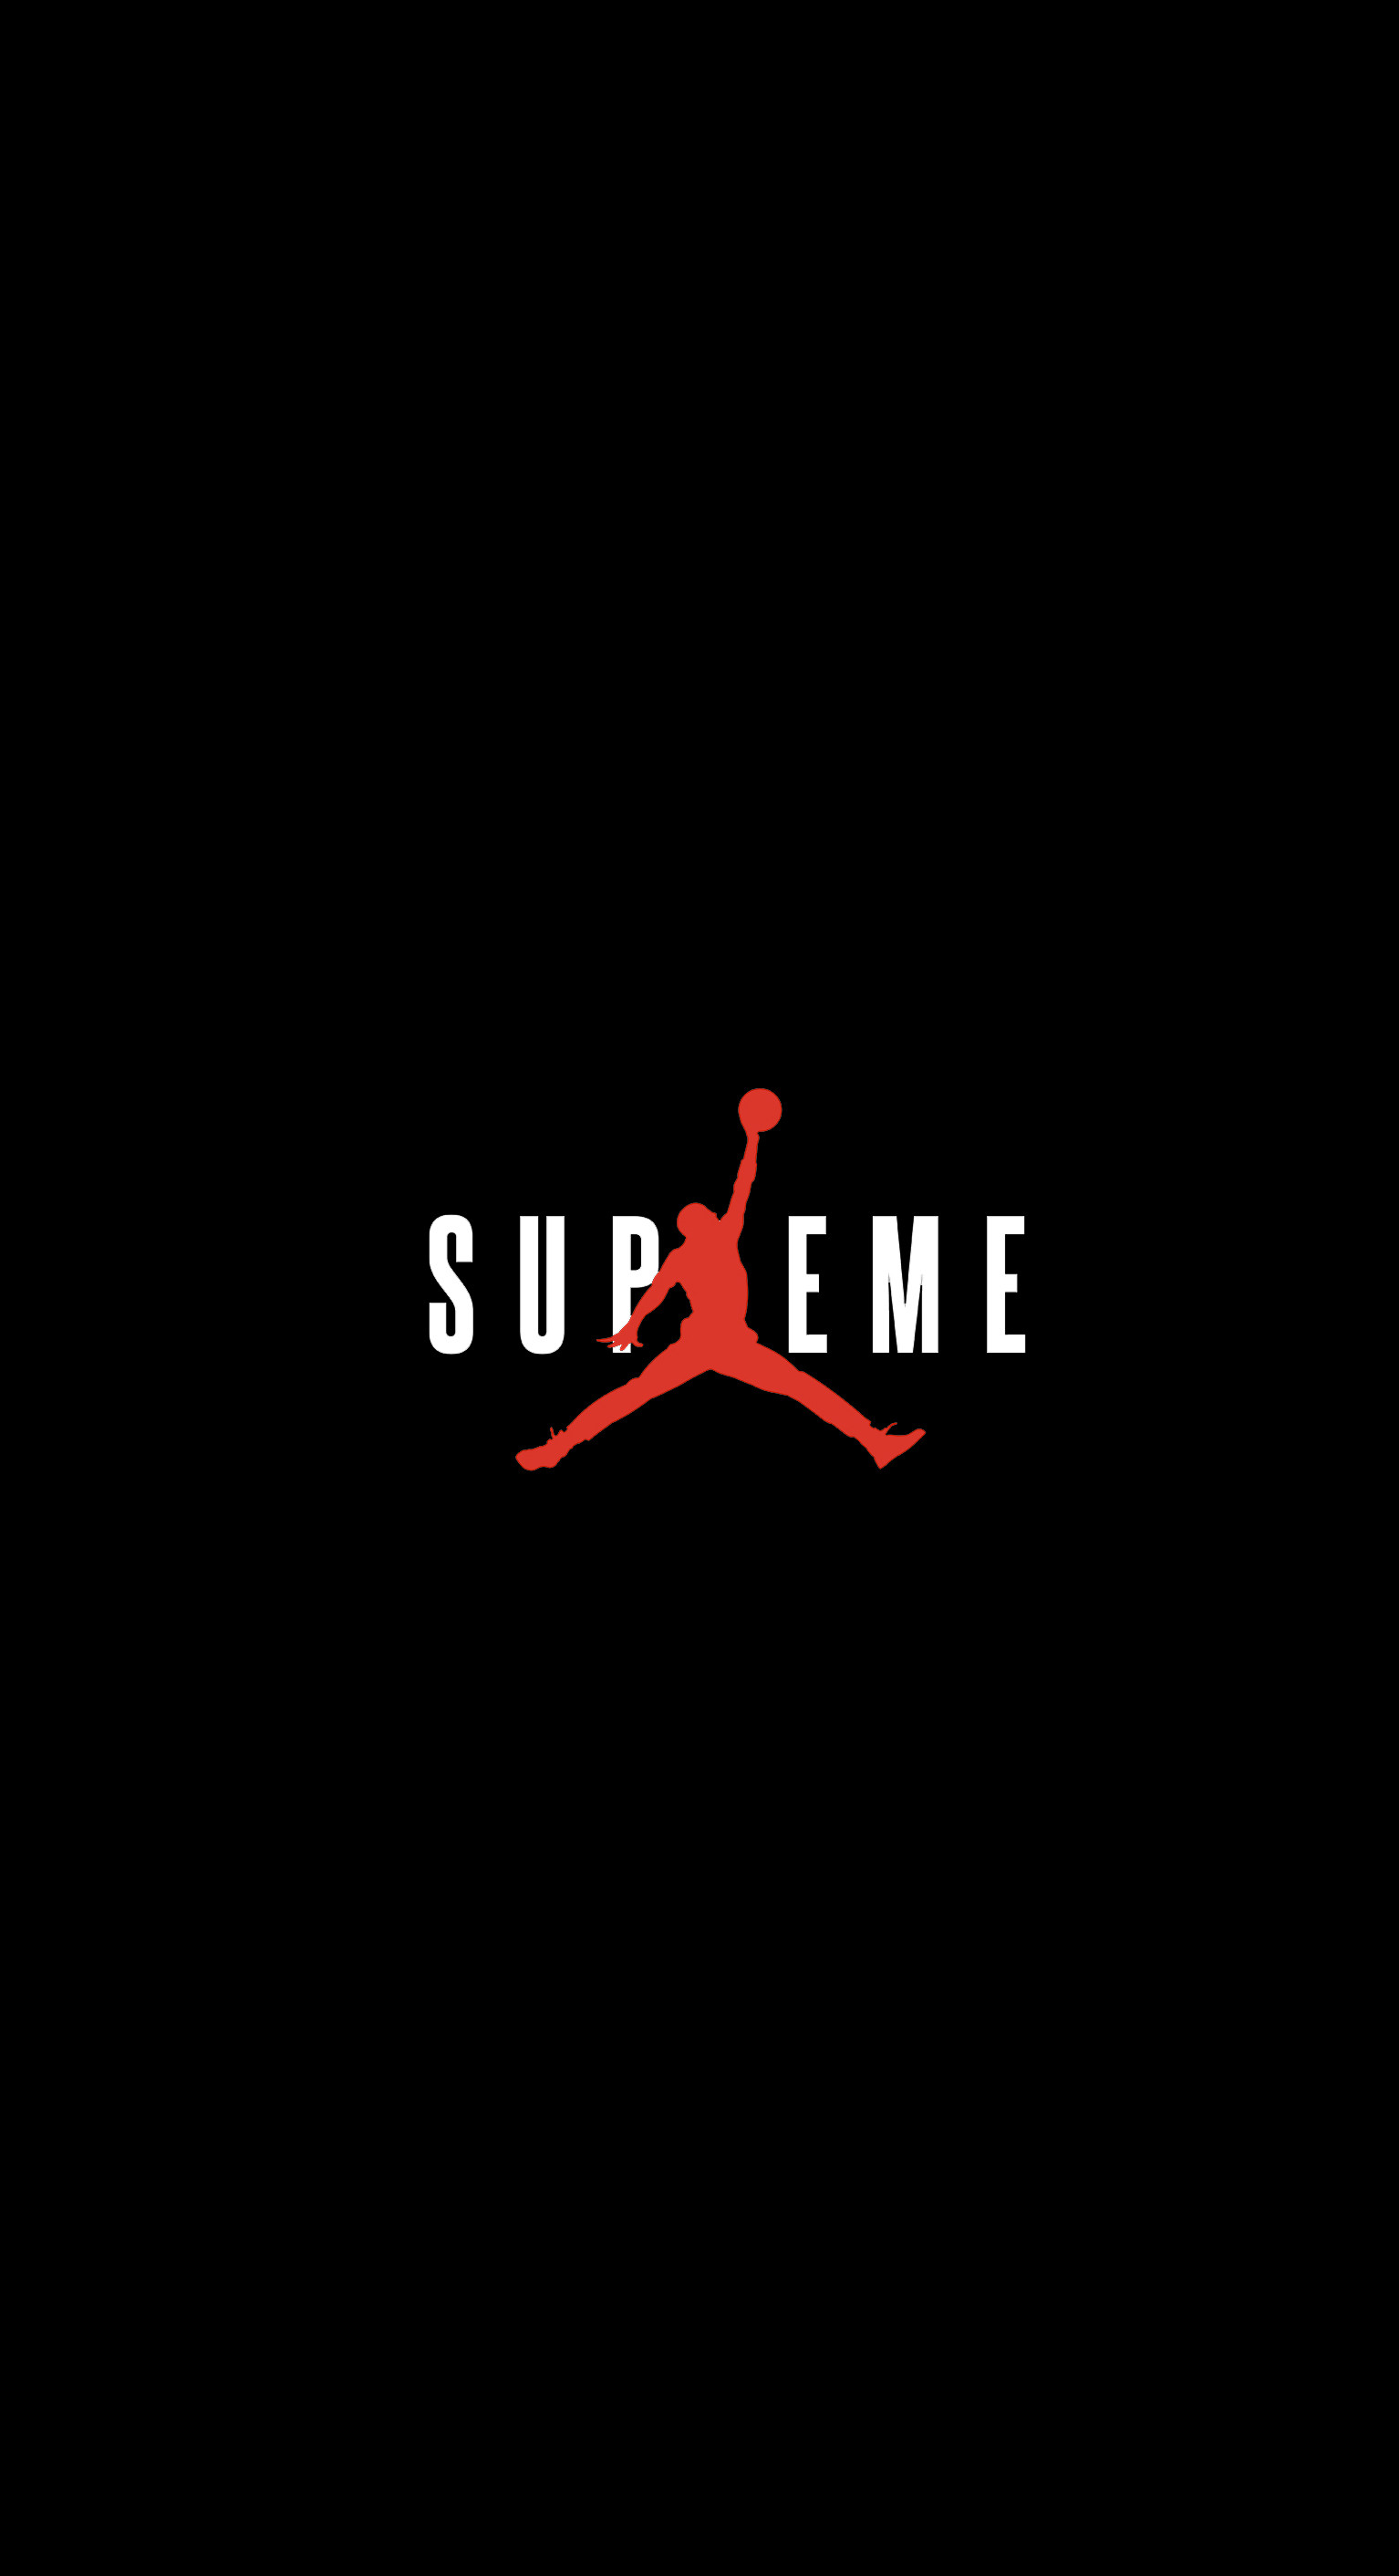 Supreme Wallpaper 73 images 1534x2824